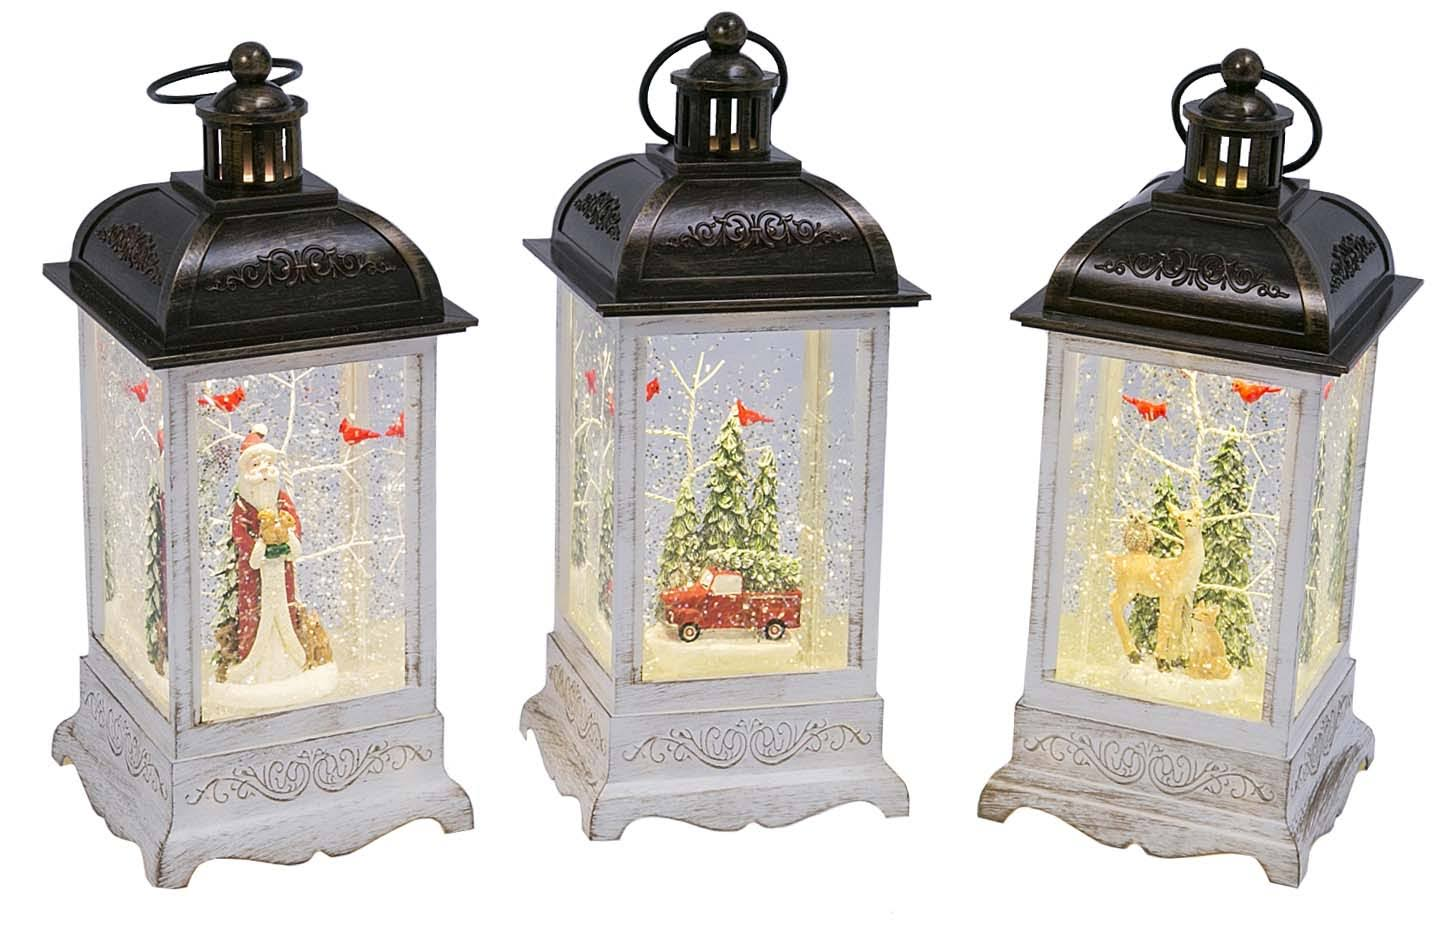 10.5 inch Old World Santa White Lighted Water Lantern with Swirling Glitter - 2497550-SANTA by Gerson